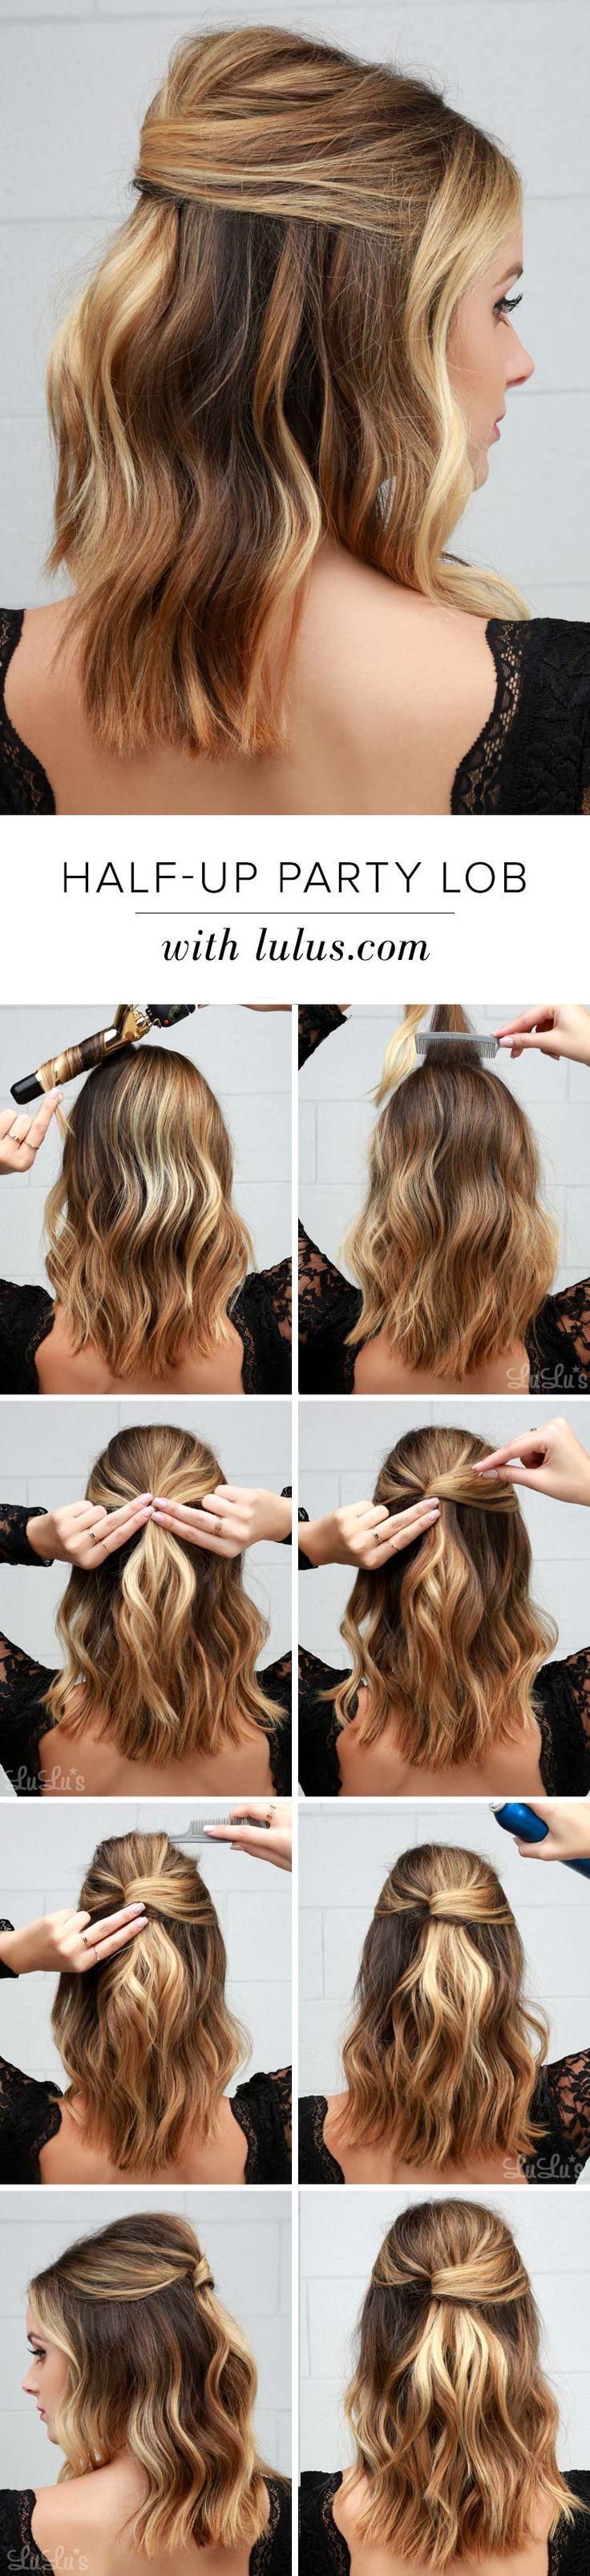 159 best Hair Ideas images on Pinterest